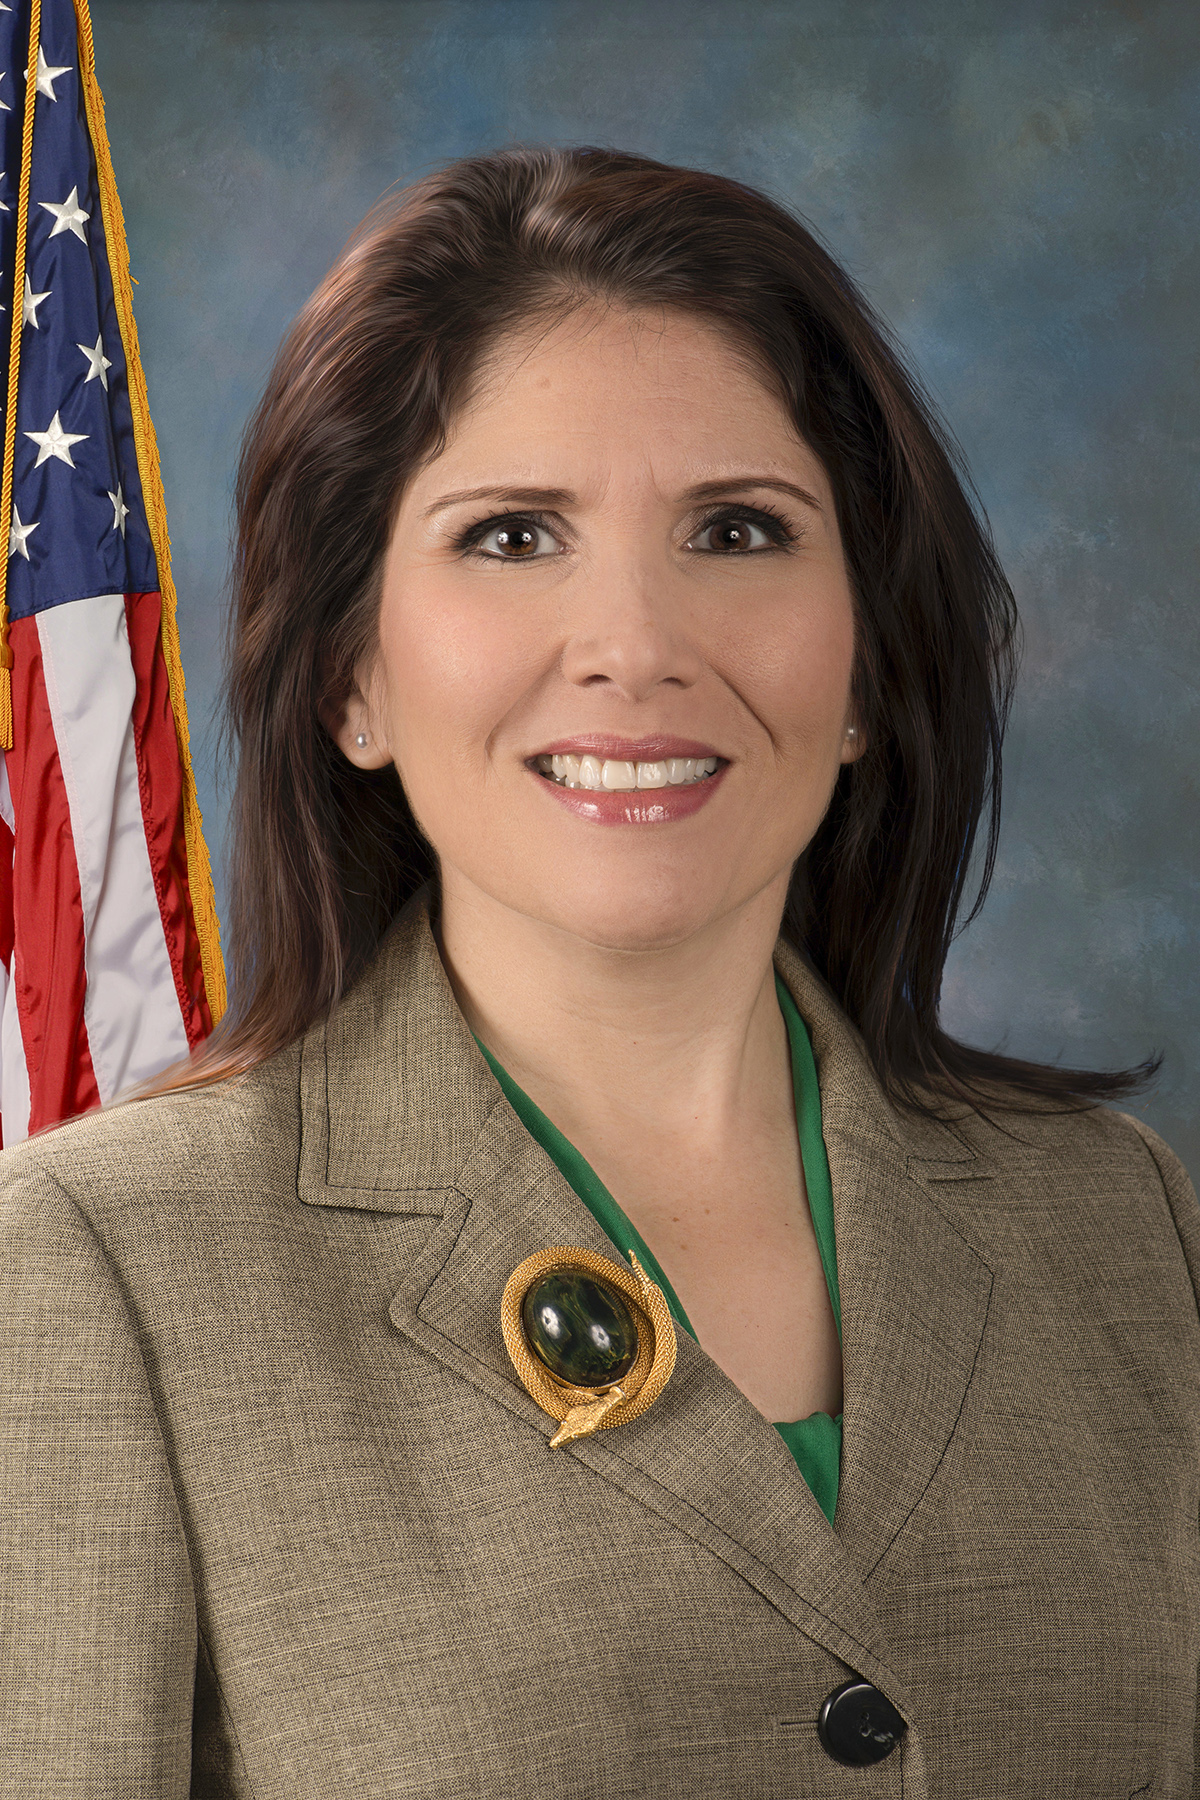 Illinois Lieutenant Governor Evelyn Sanguinetti to join Busboom and Wolfe Wednesday